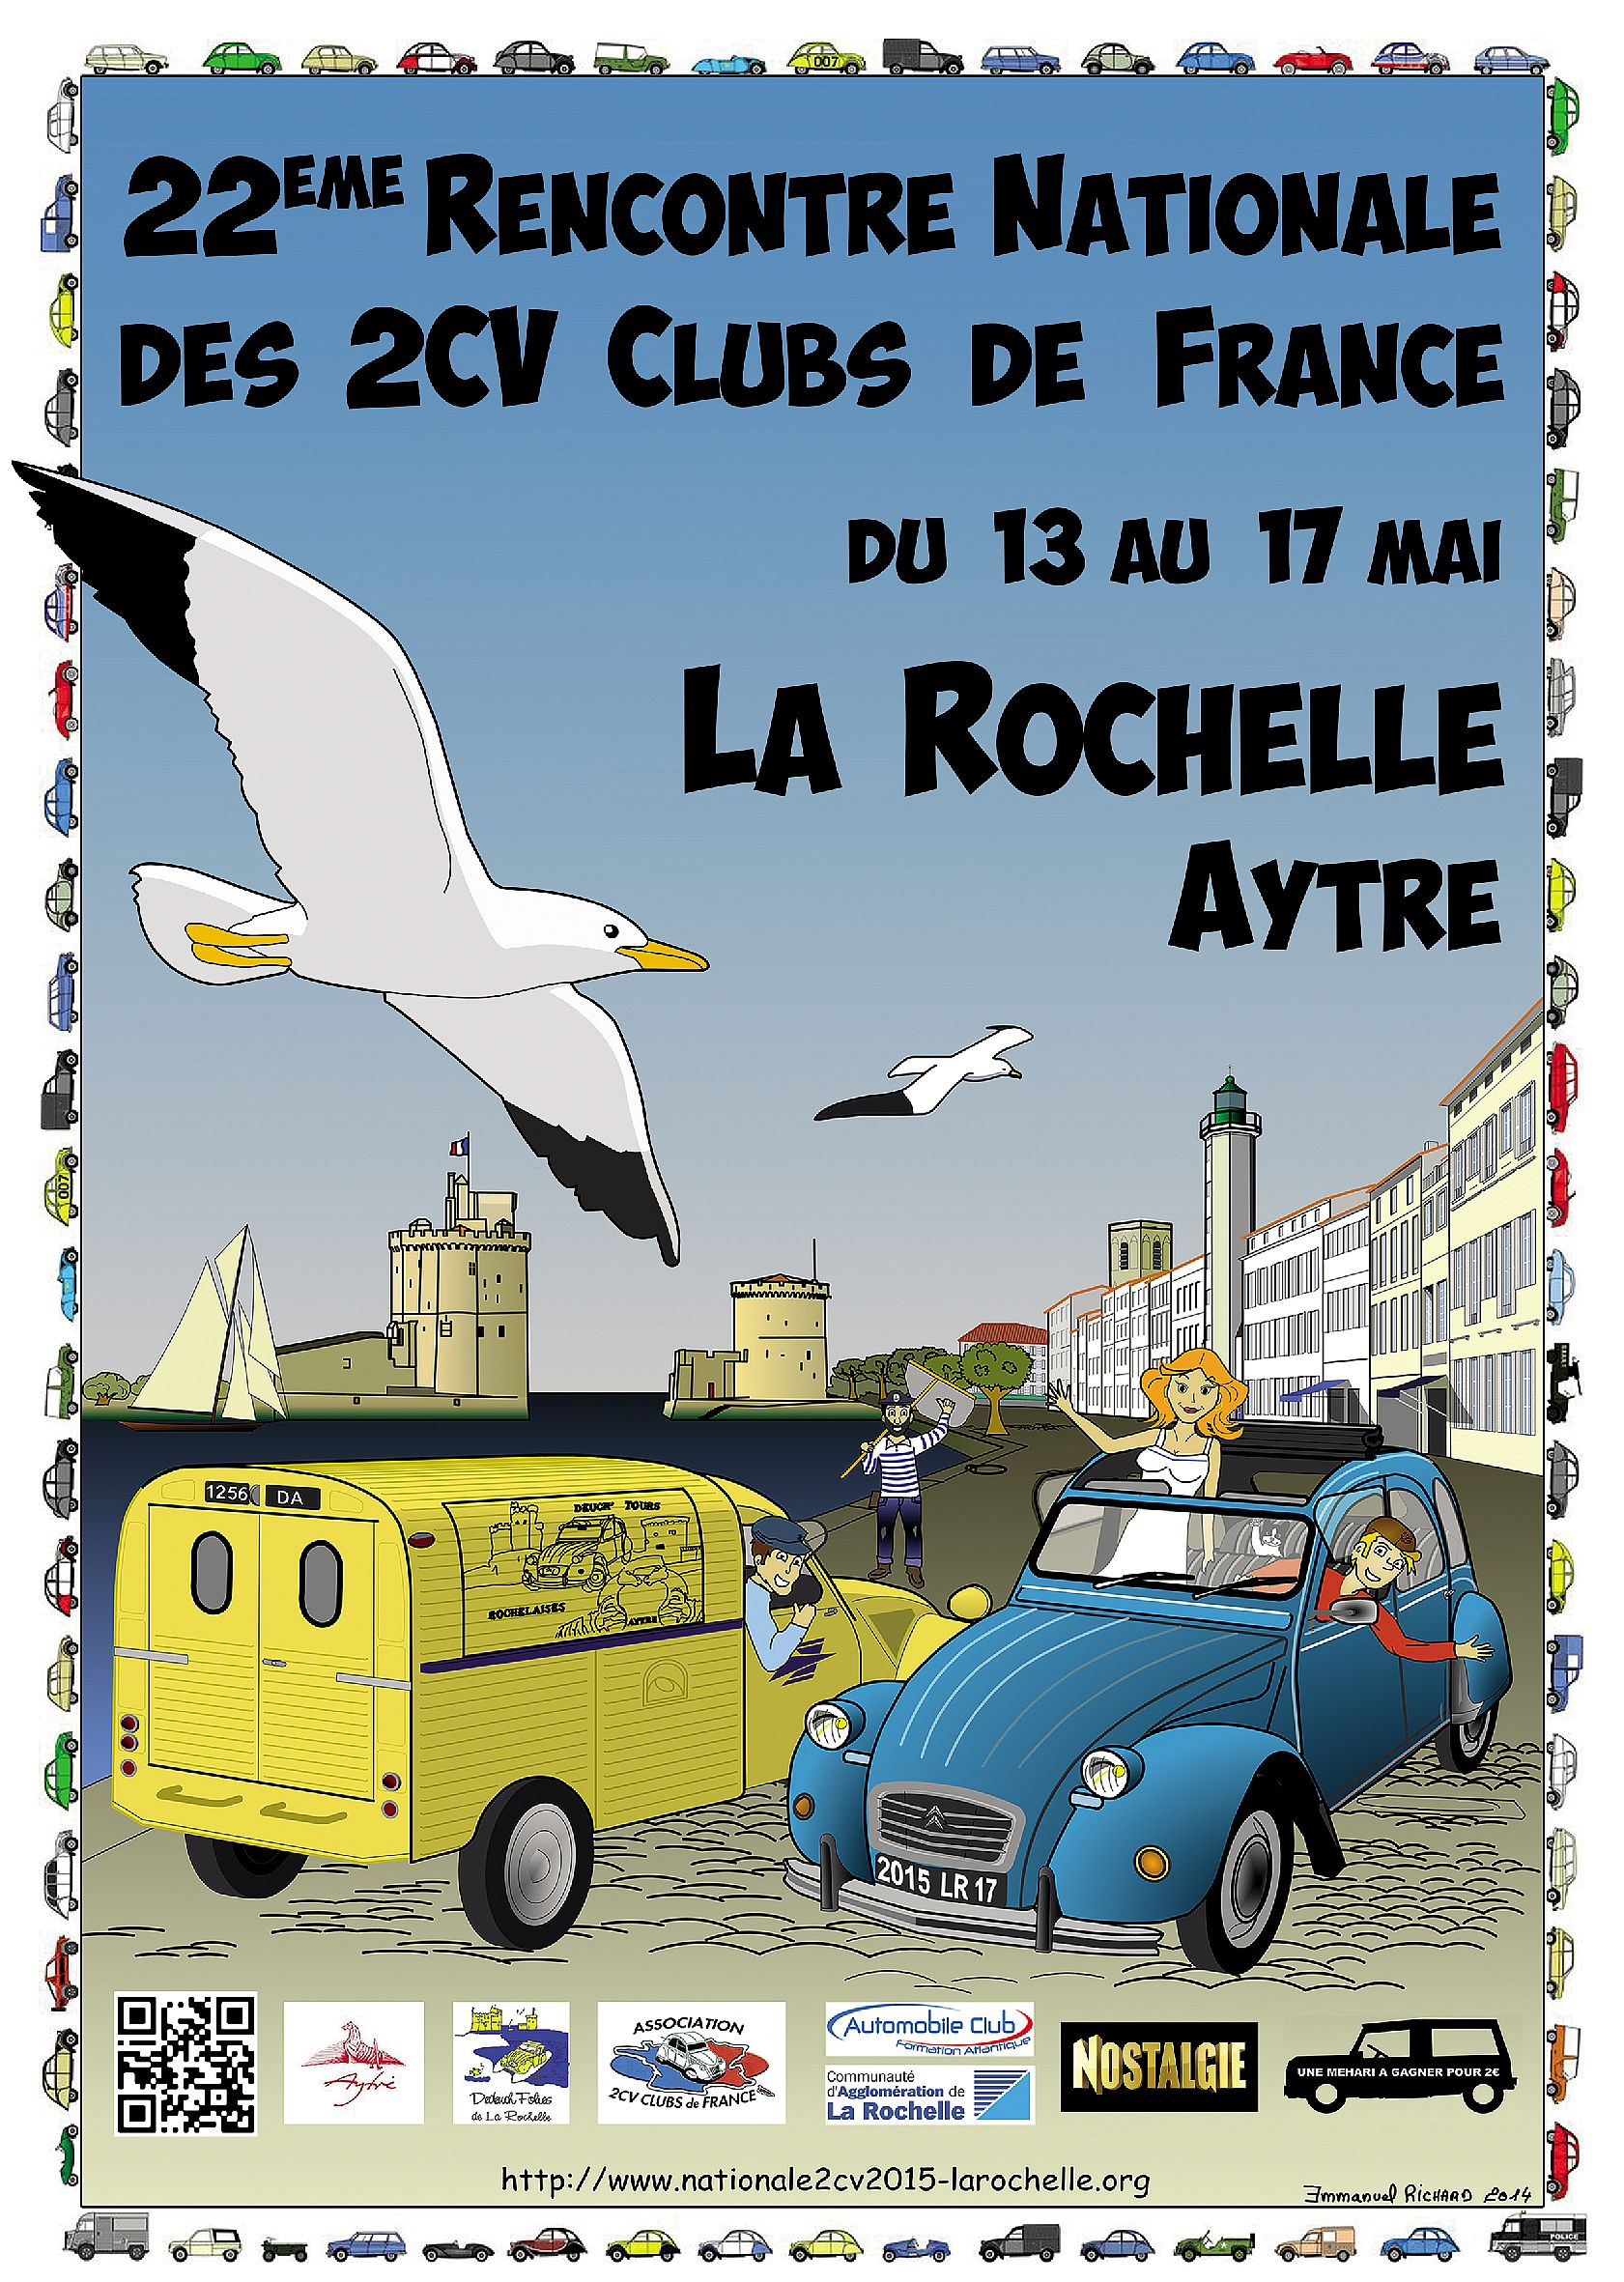 rencontre nationale des 2cv clubs de france 13 mai)